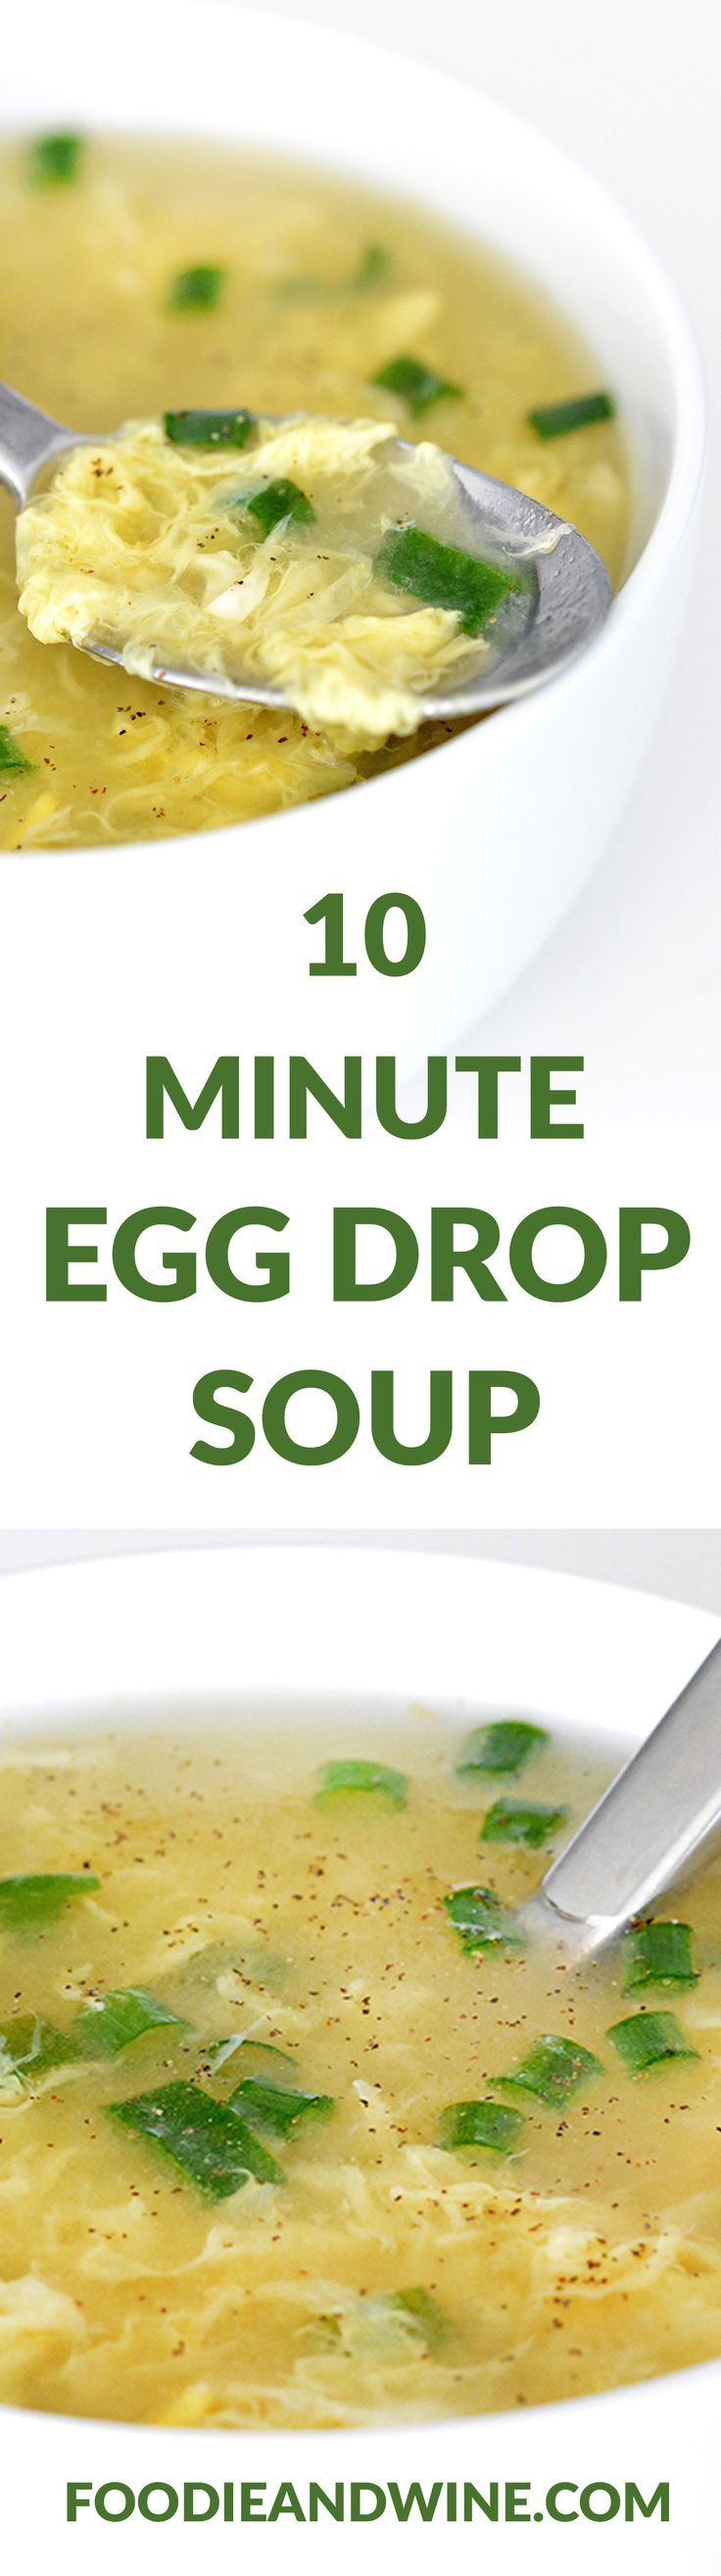 10 minute egg drop soup recipe this chinese food recipe is quick 10 minute egg drop soup recipe this chinese food recipe is quick easy and loaded with flavor pairs nicely with fried rice our other asian recipes forumfinder Image collections